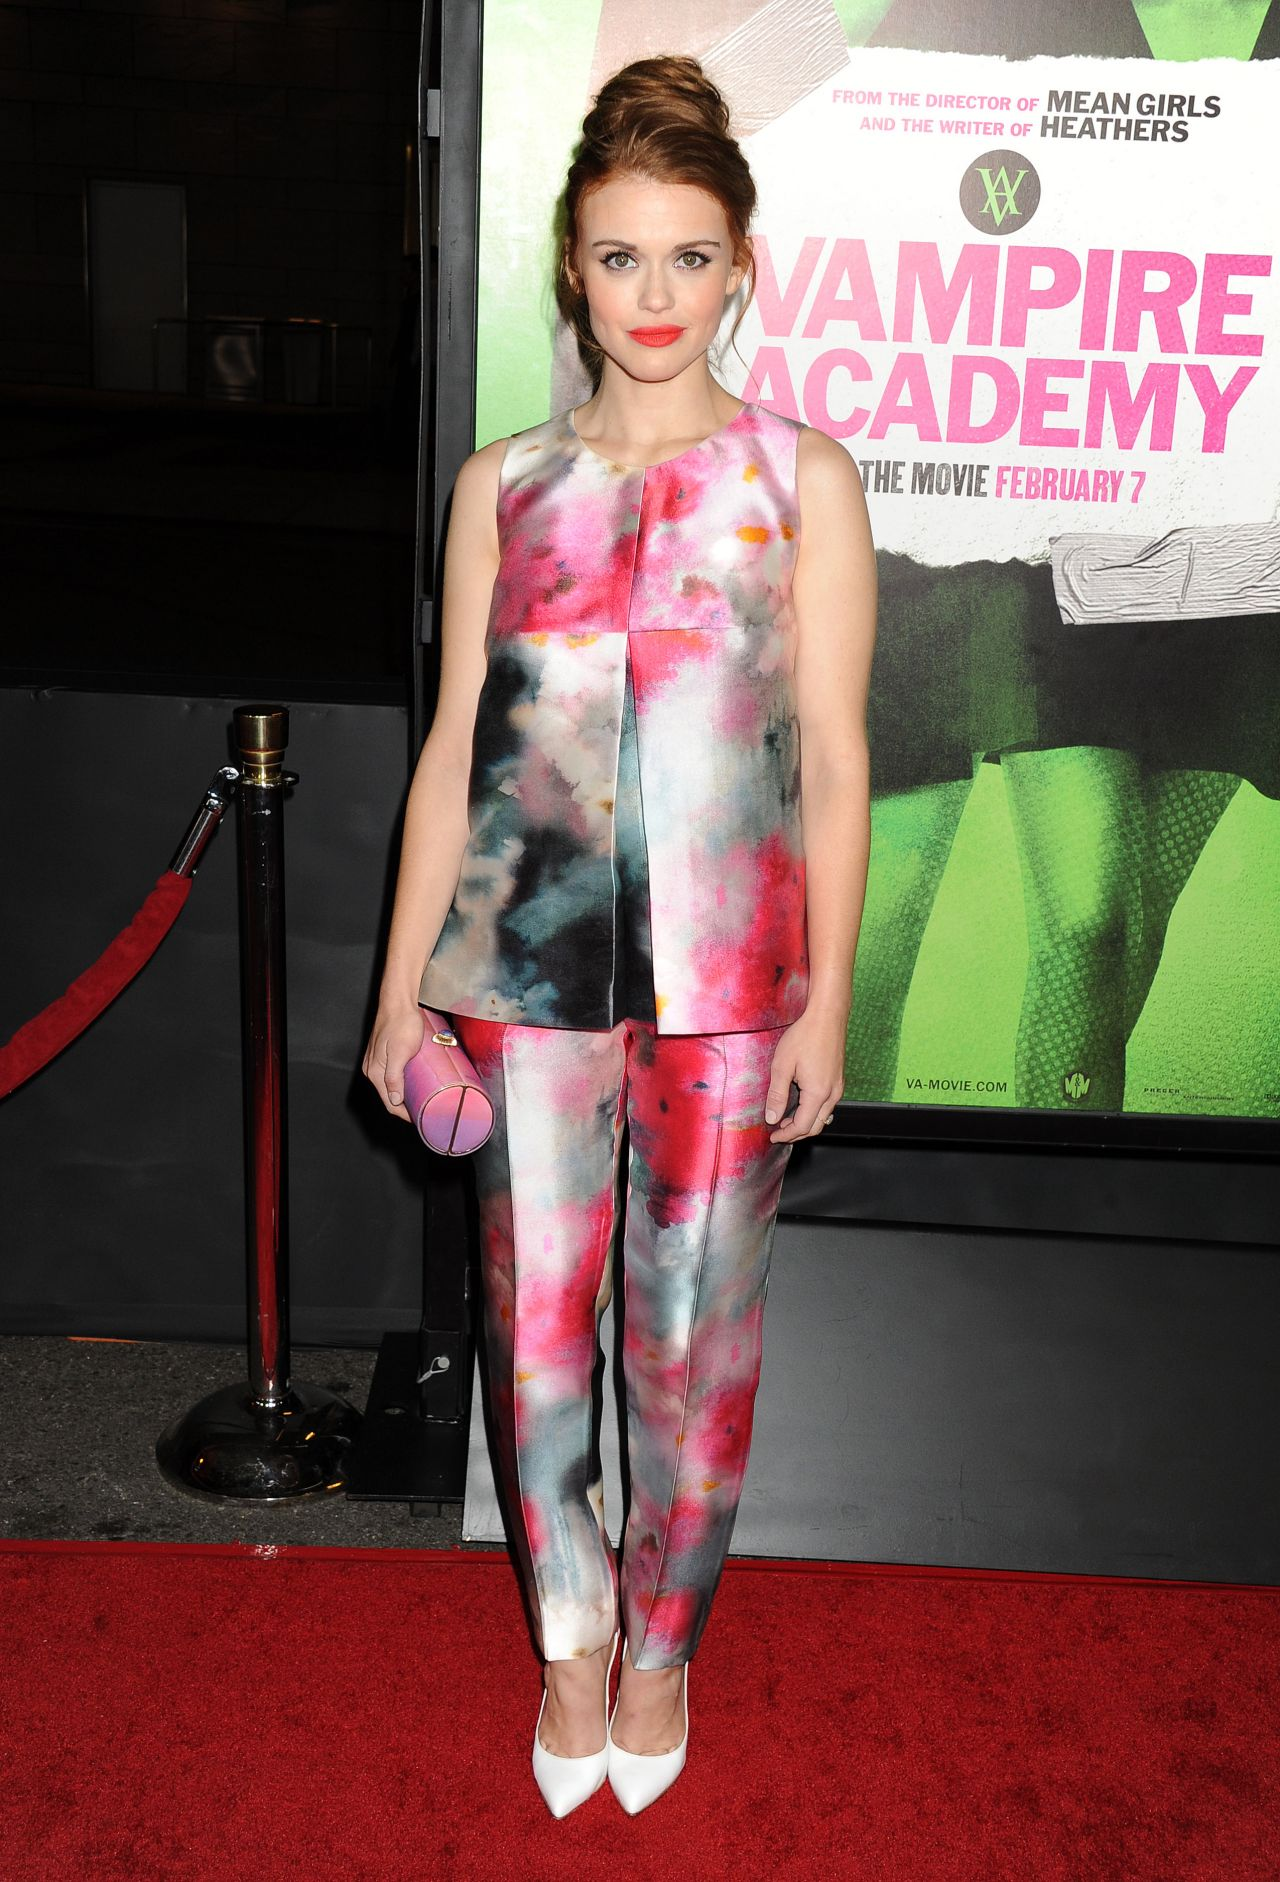 Holland Roden on Red Carpet - VAMPIRE ACADEMY Premiere in Los Angeles